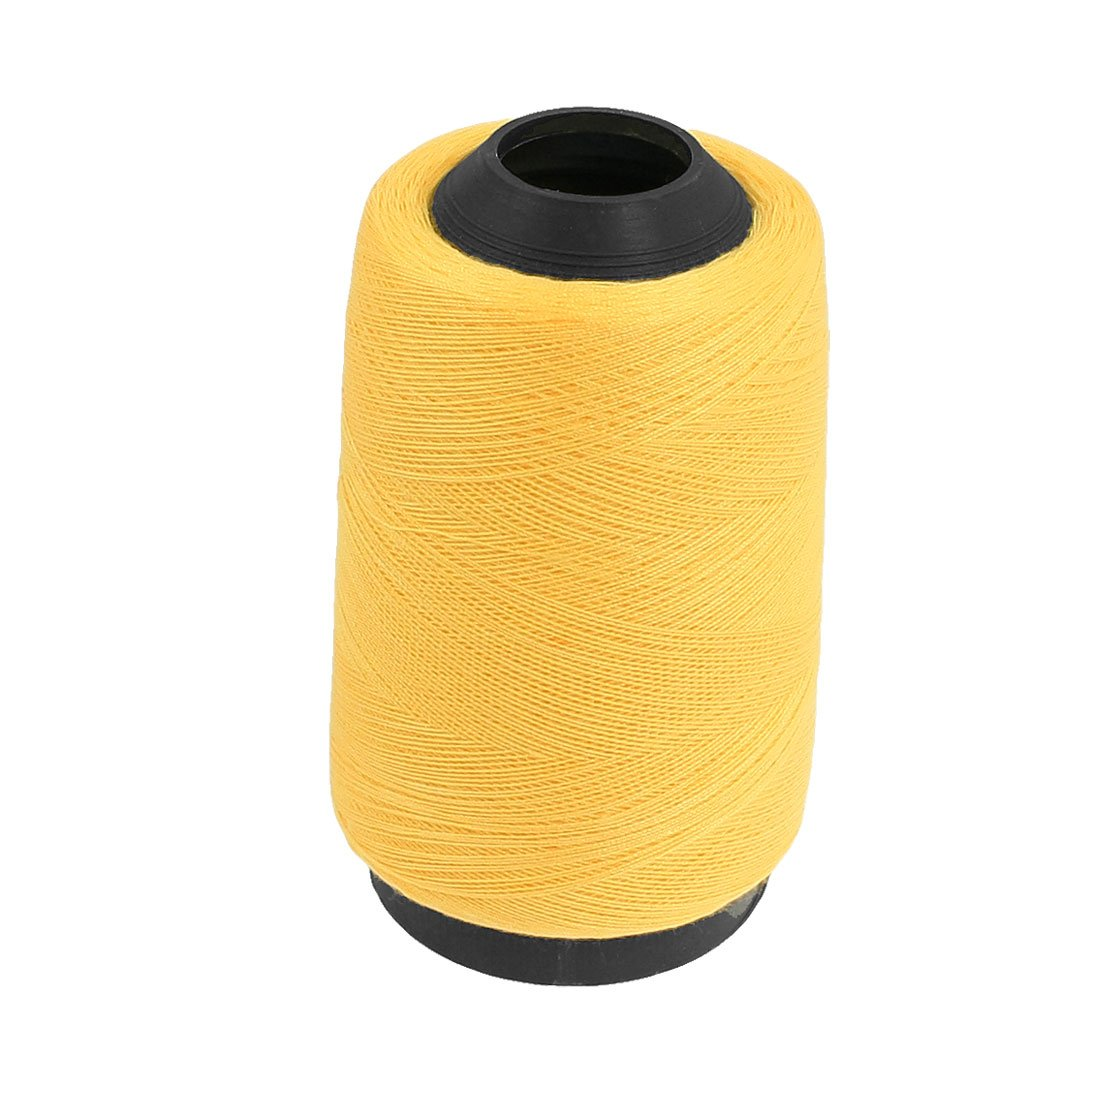 uxcell Embroidery Machine Sewing Quilting Thread String Spool Yellow a12090700ux0411